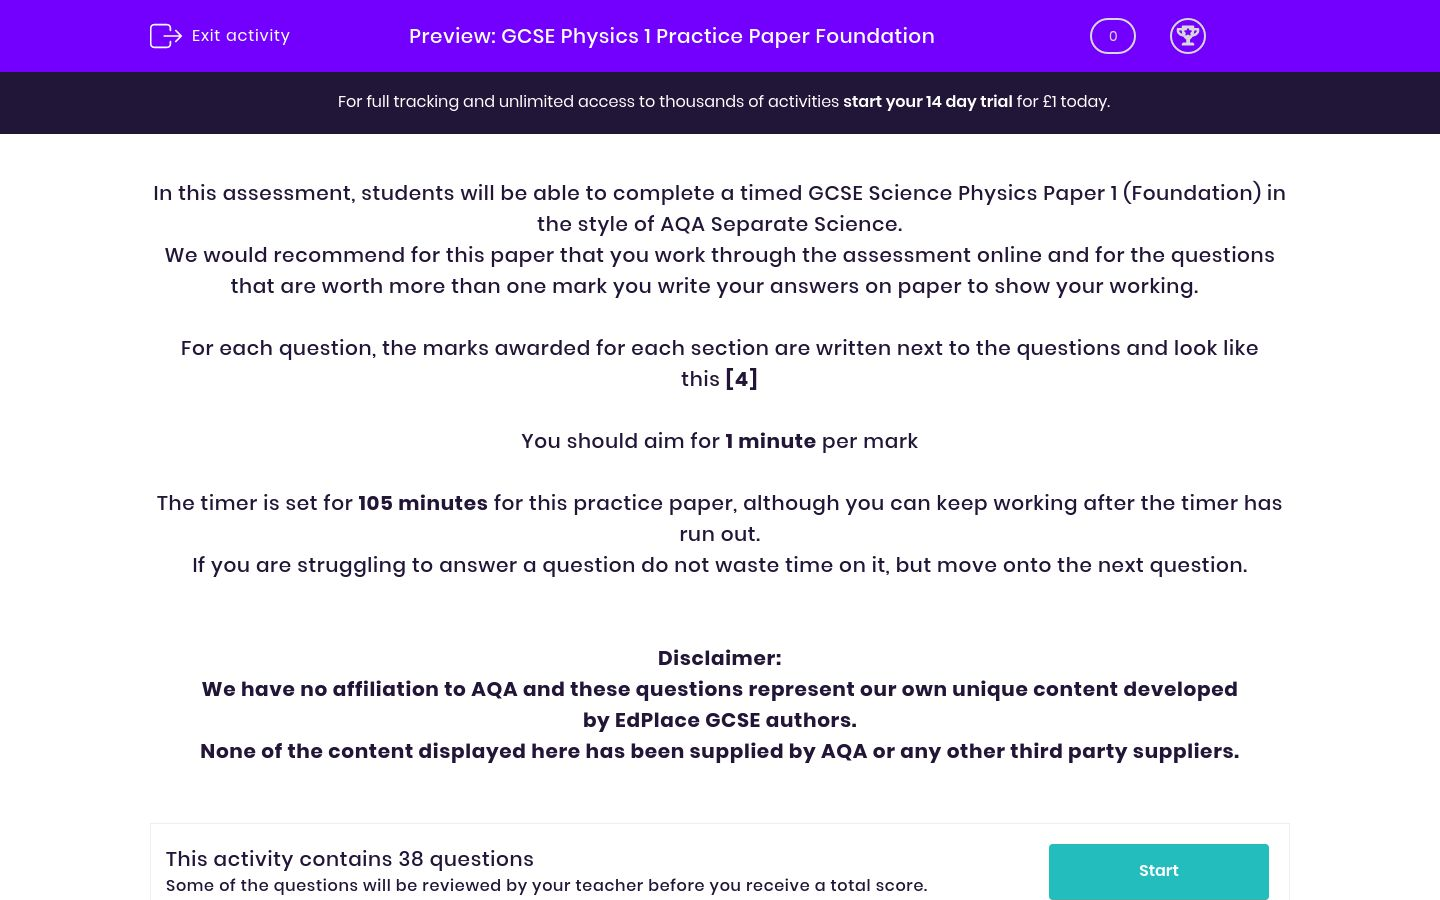 'GCSE Physics 1 Practice Paper Foundation' worksheet